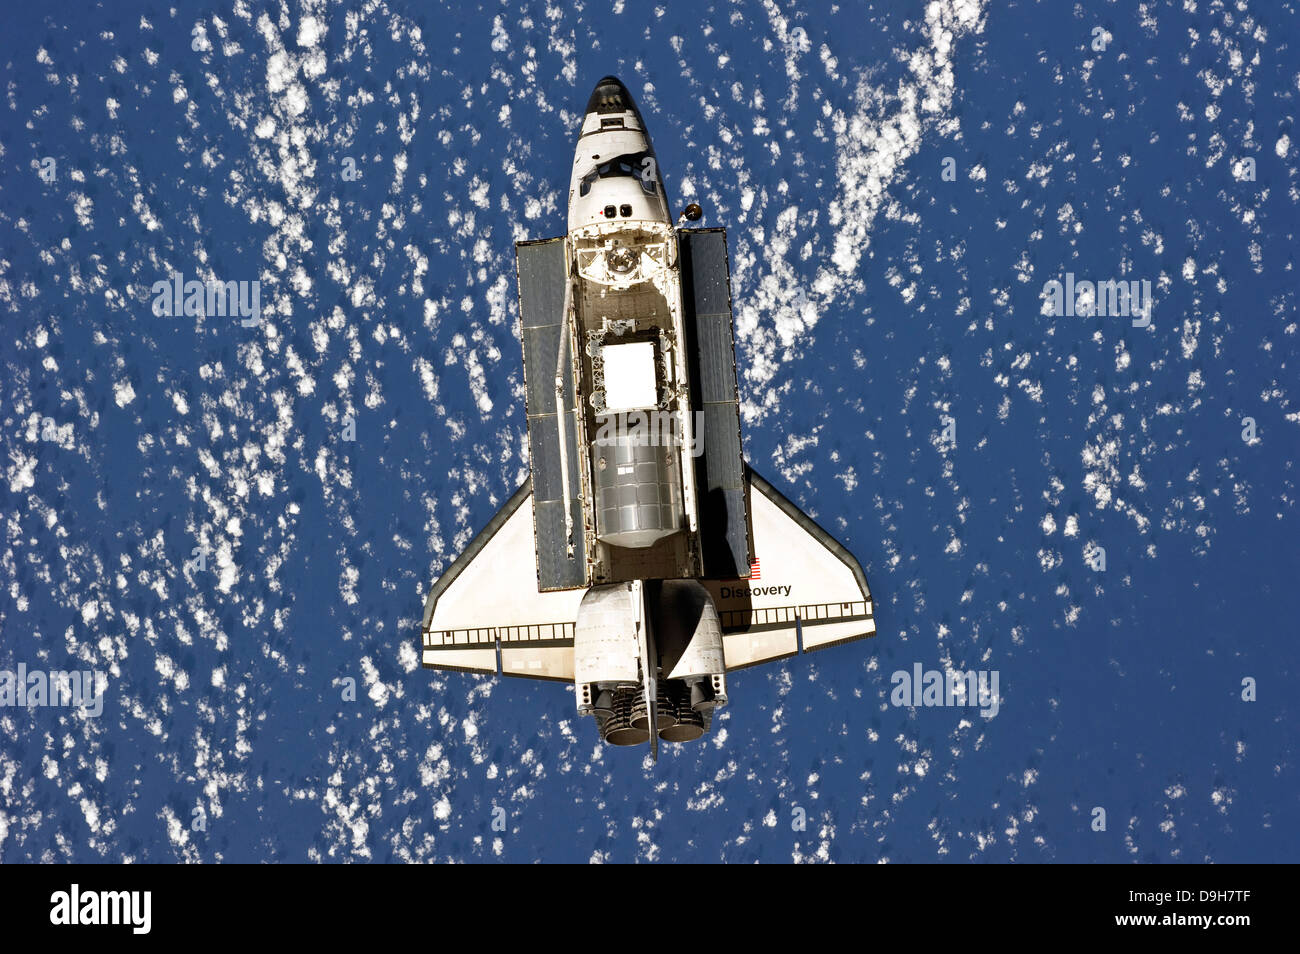 foto space shuttle discovery - photo #41